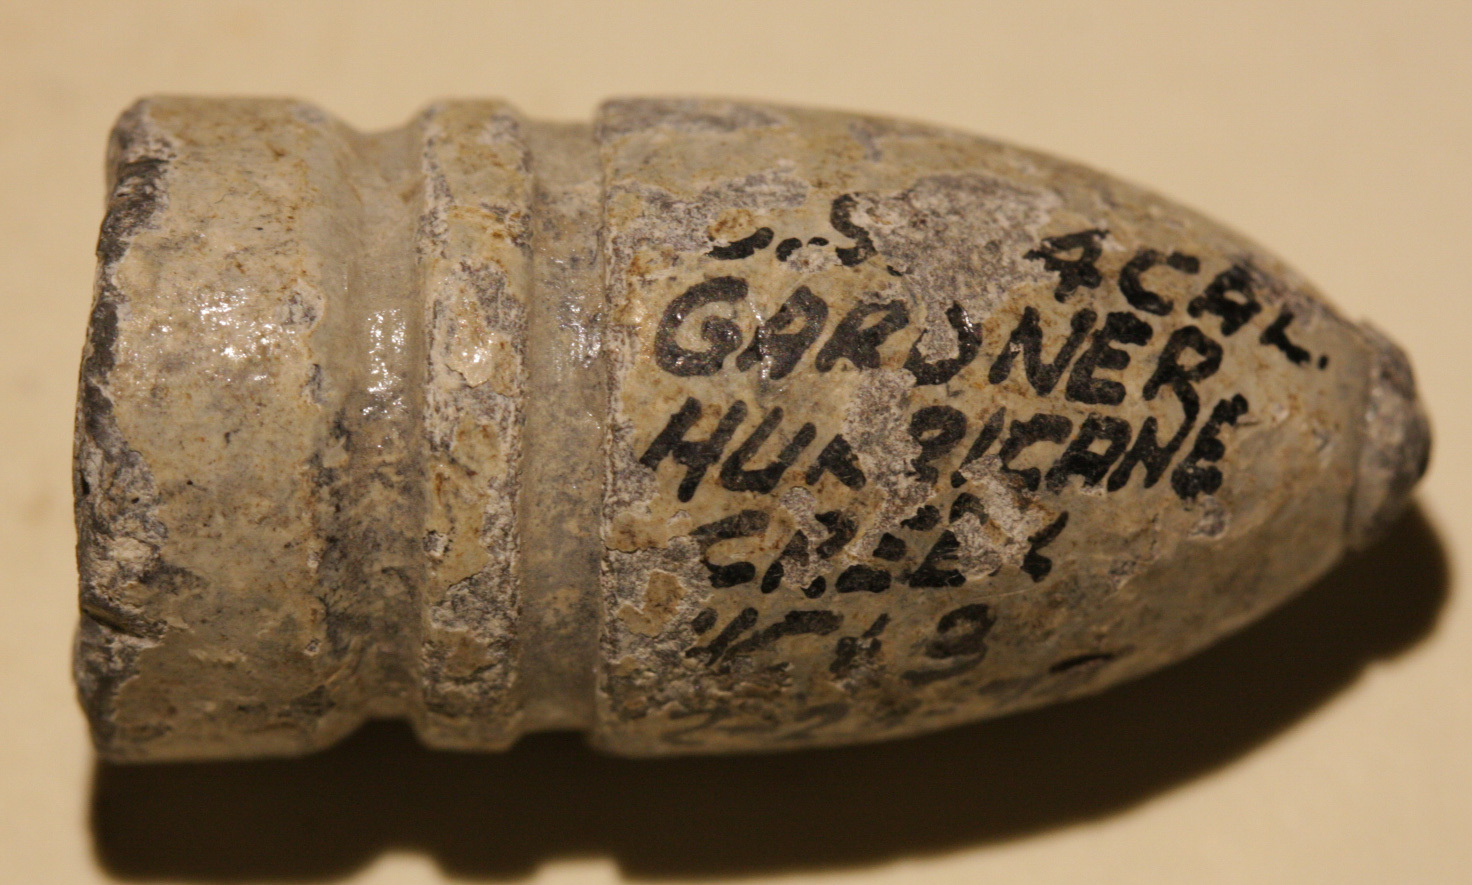 JUST ADDED ON 9/28 - HURRICANE CREEK, MS / JOHN MARKS COLLECTION - Dropped .54 Caliber Confederate Gardner Bullet with Painted ID - Found on February 23, 1974 2 2 032